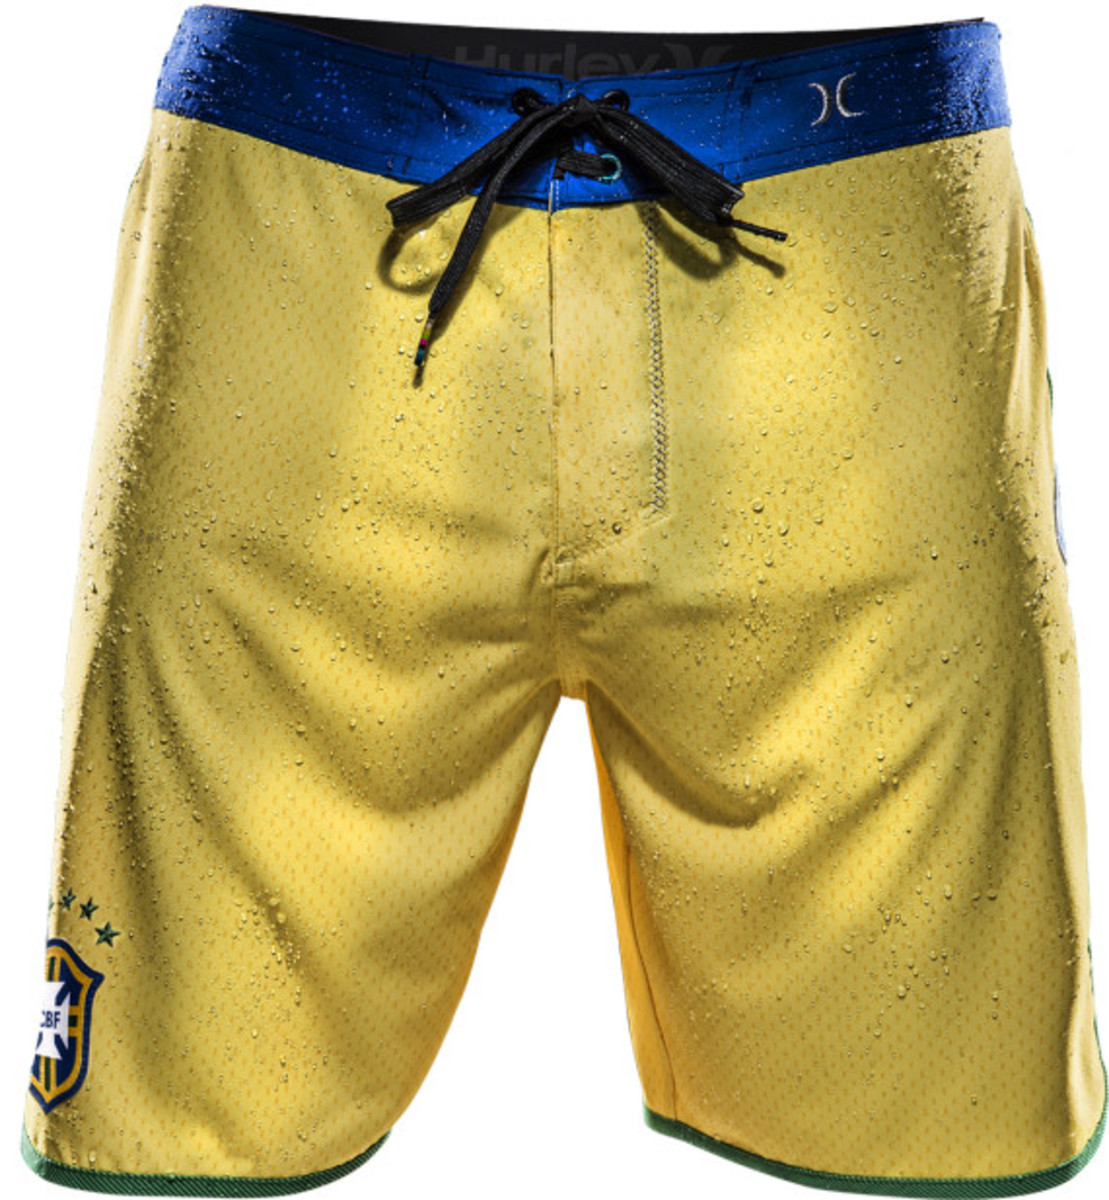 hurley-phantom-national-team-boardshorts-11